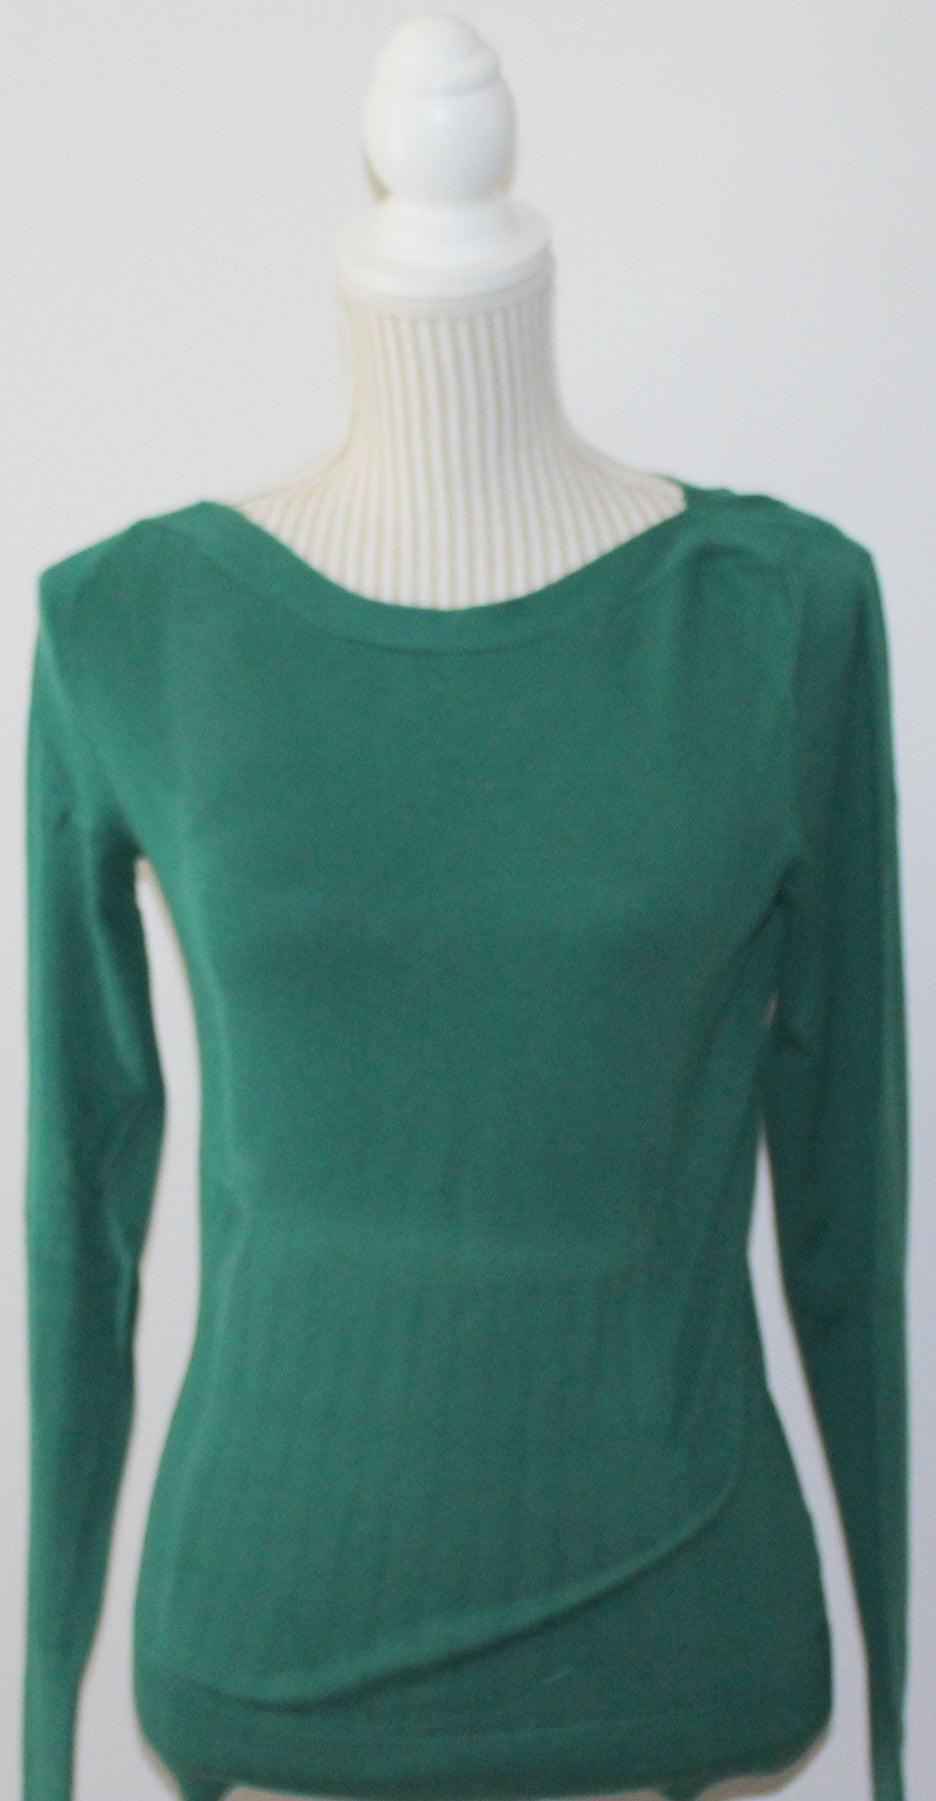 JACOB LS GREEN TOP LADIES SMALL VGUC